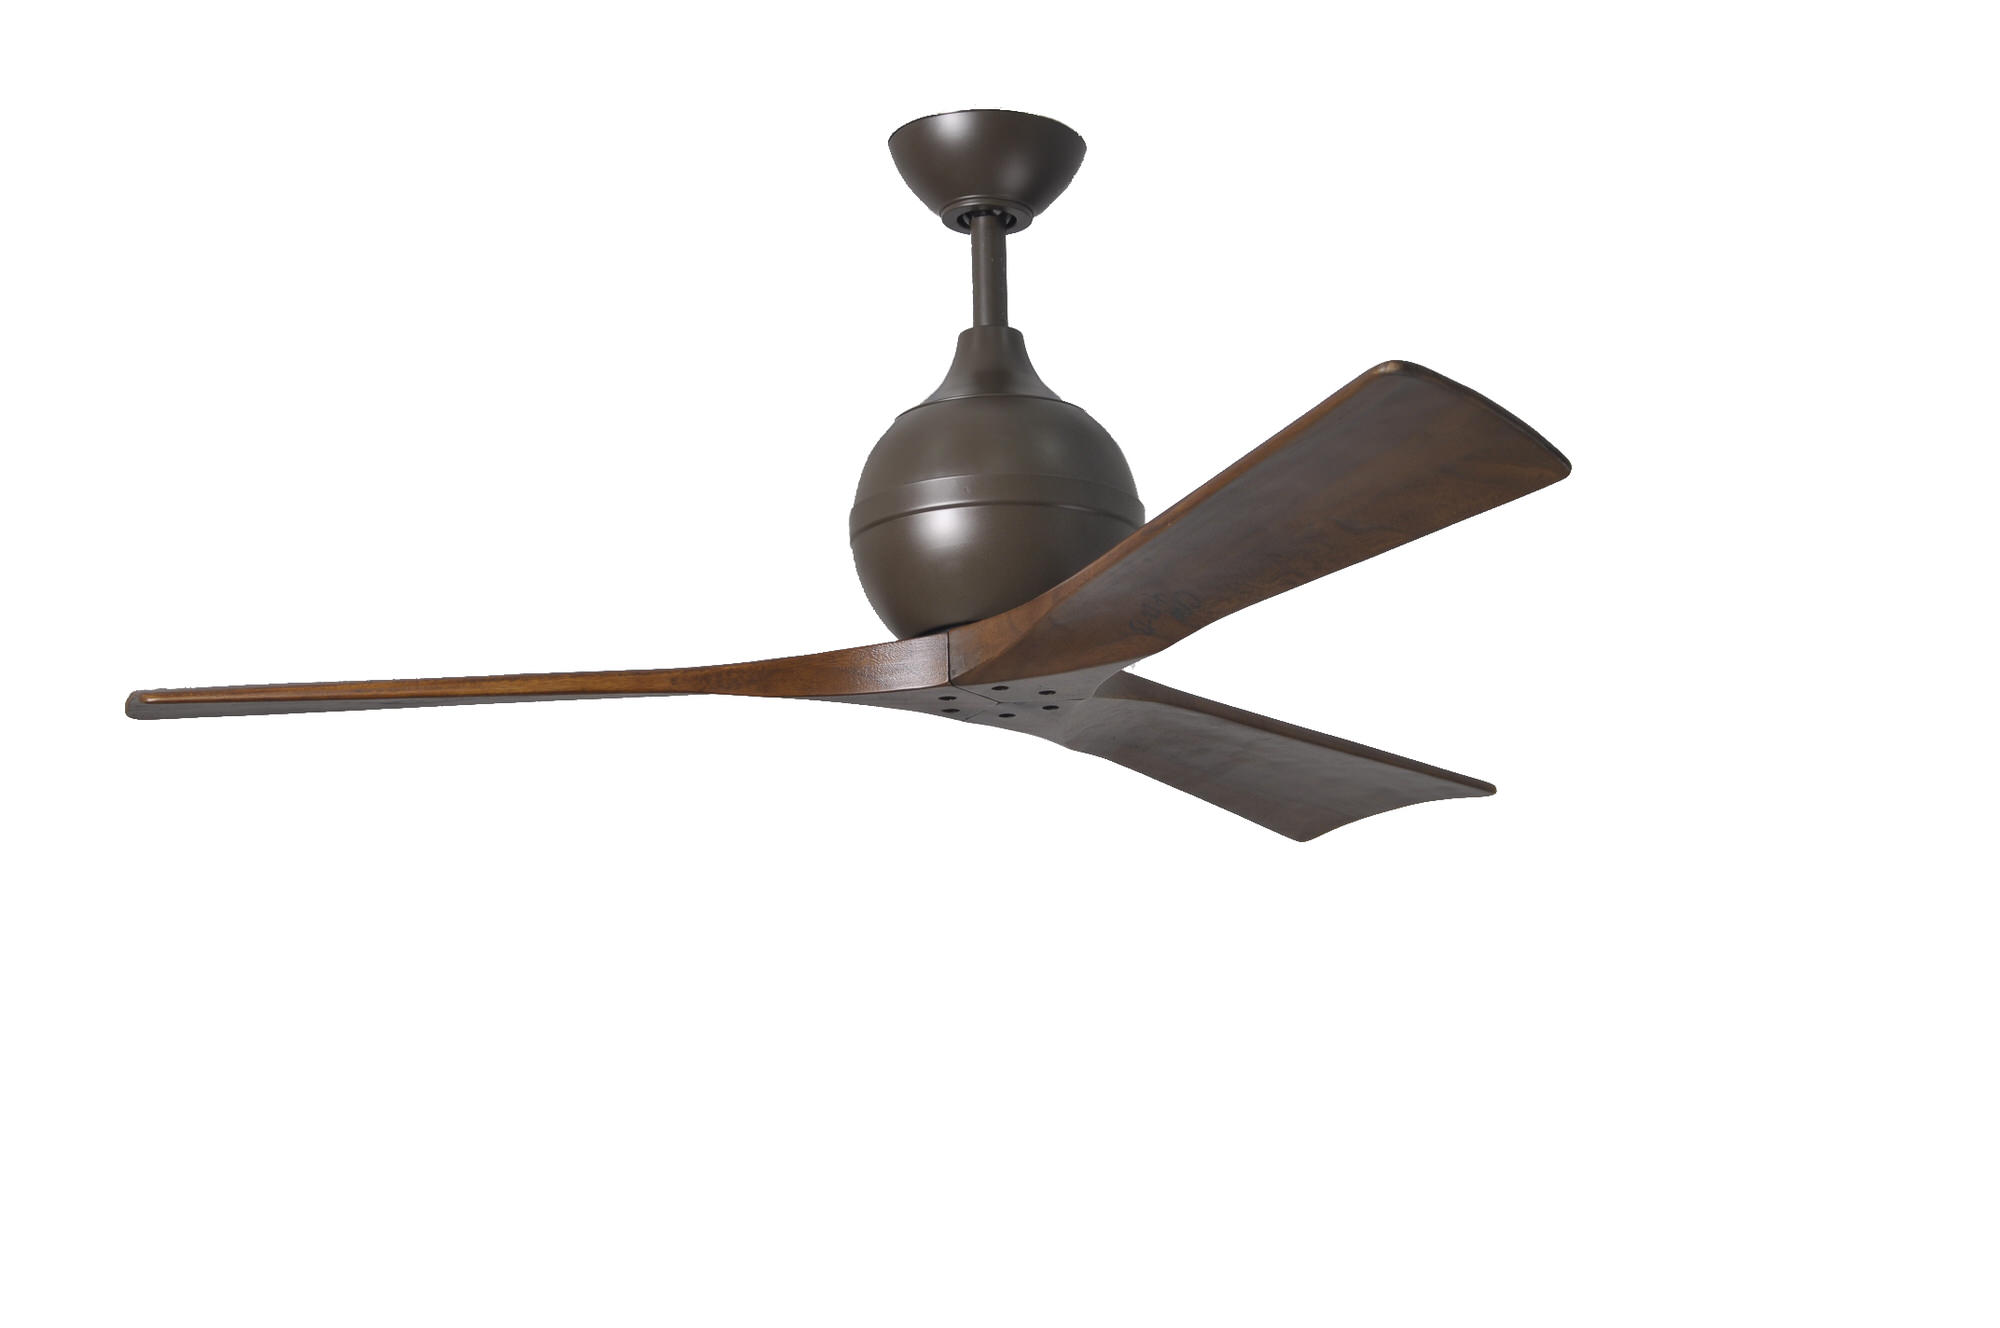 Matthews atlas irene 3 low energy dc ceiling fan - Pictures of ceiling fans ...